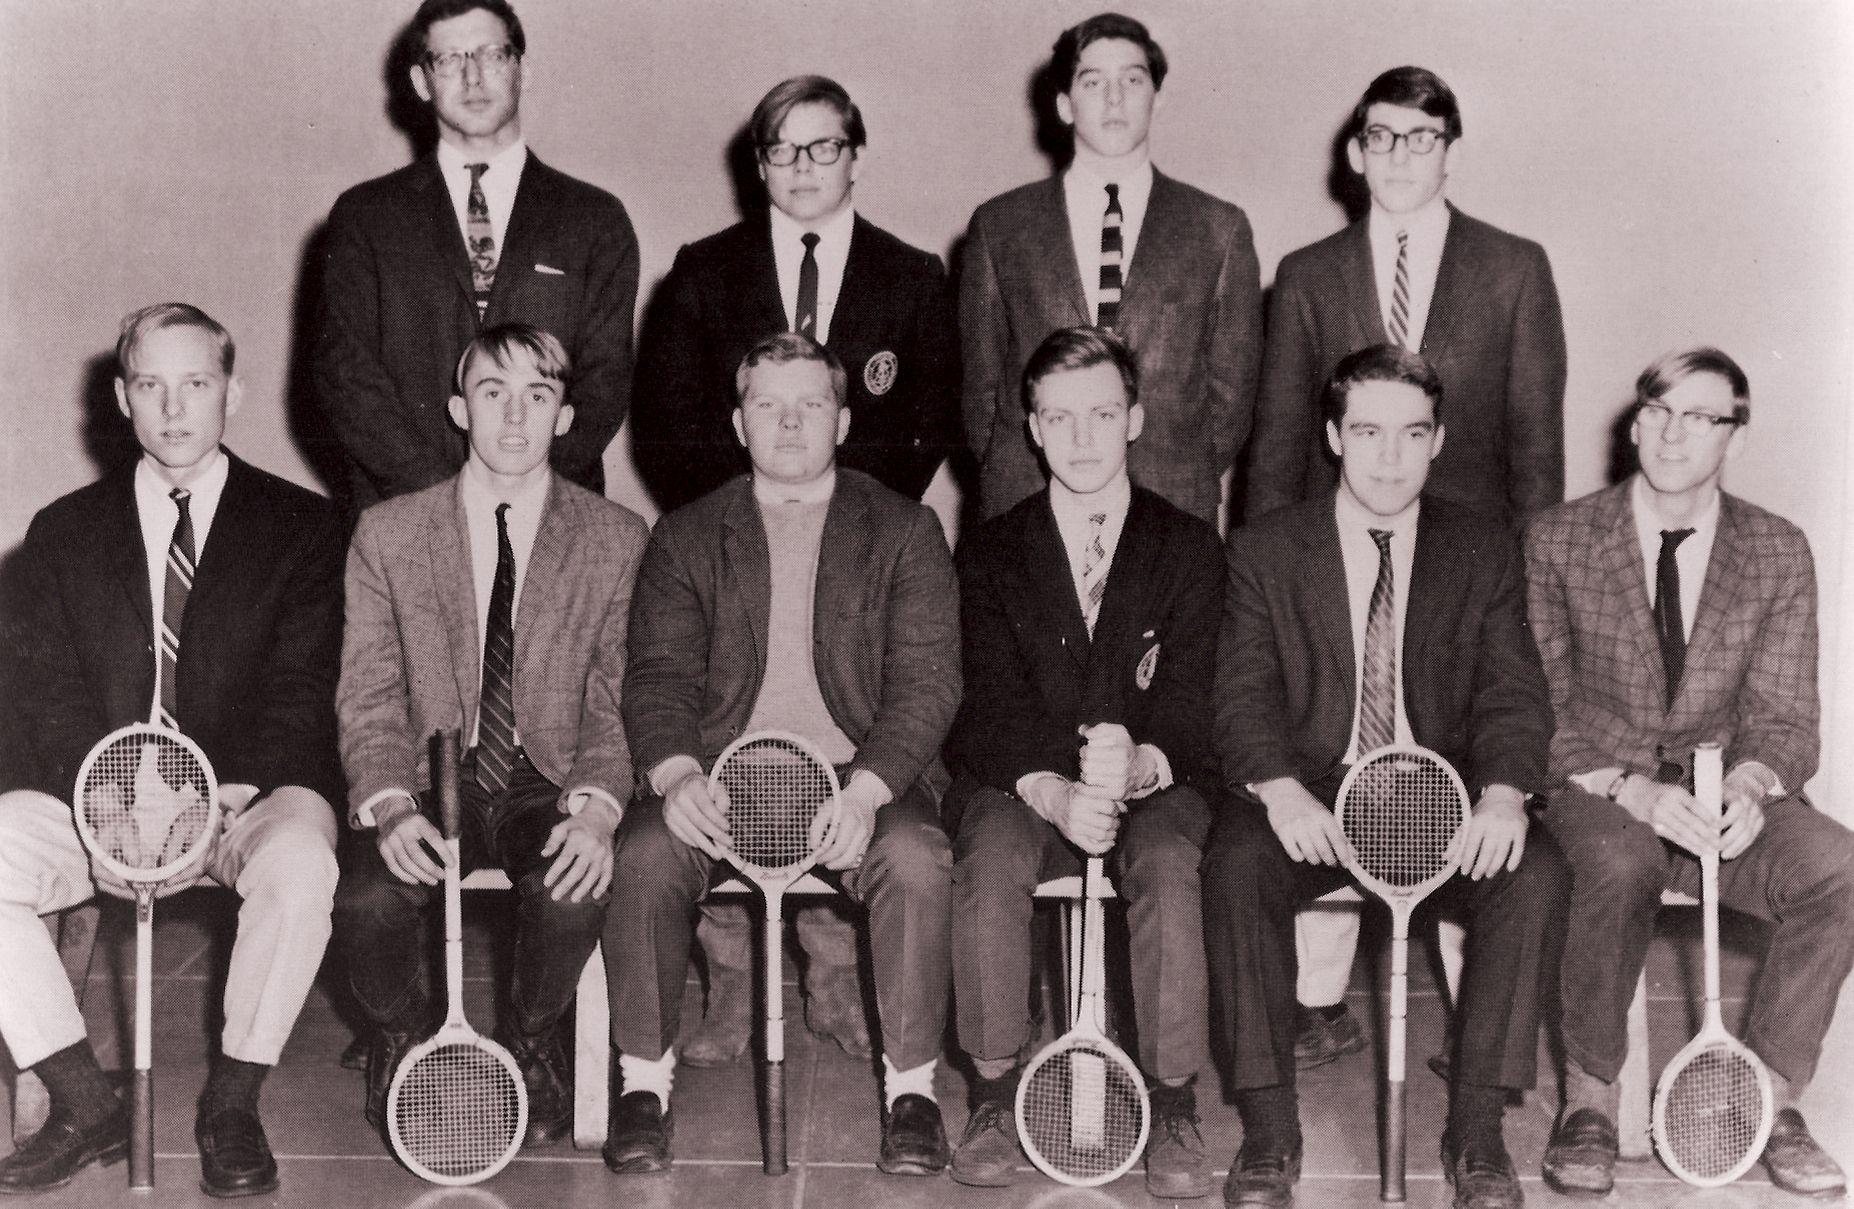 First Row: S. Dale, Dunn, Otway, Leavitt, P. Campbell, Price Second Row: Mr. Seeley, Fitzgerald, Snider, Downes